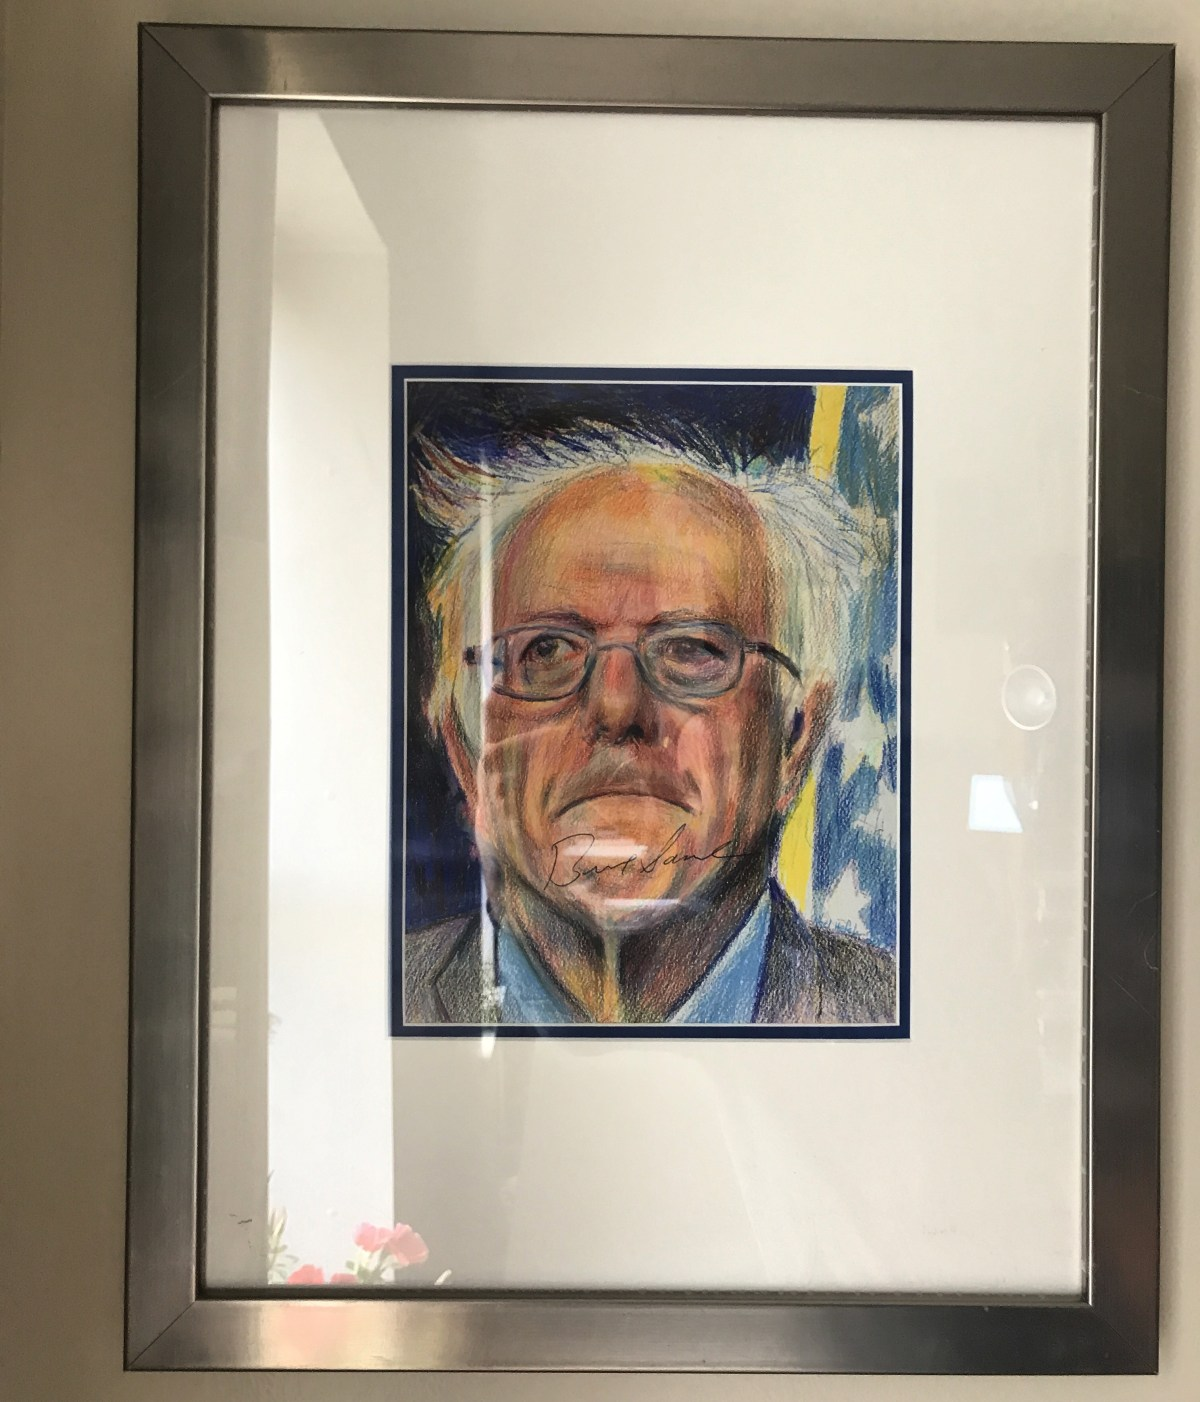 Bernie Sanders autographed a print of my drawing of him.